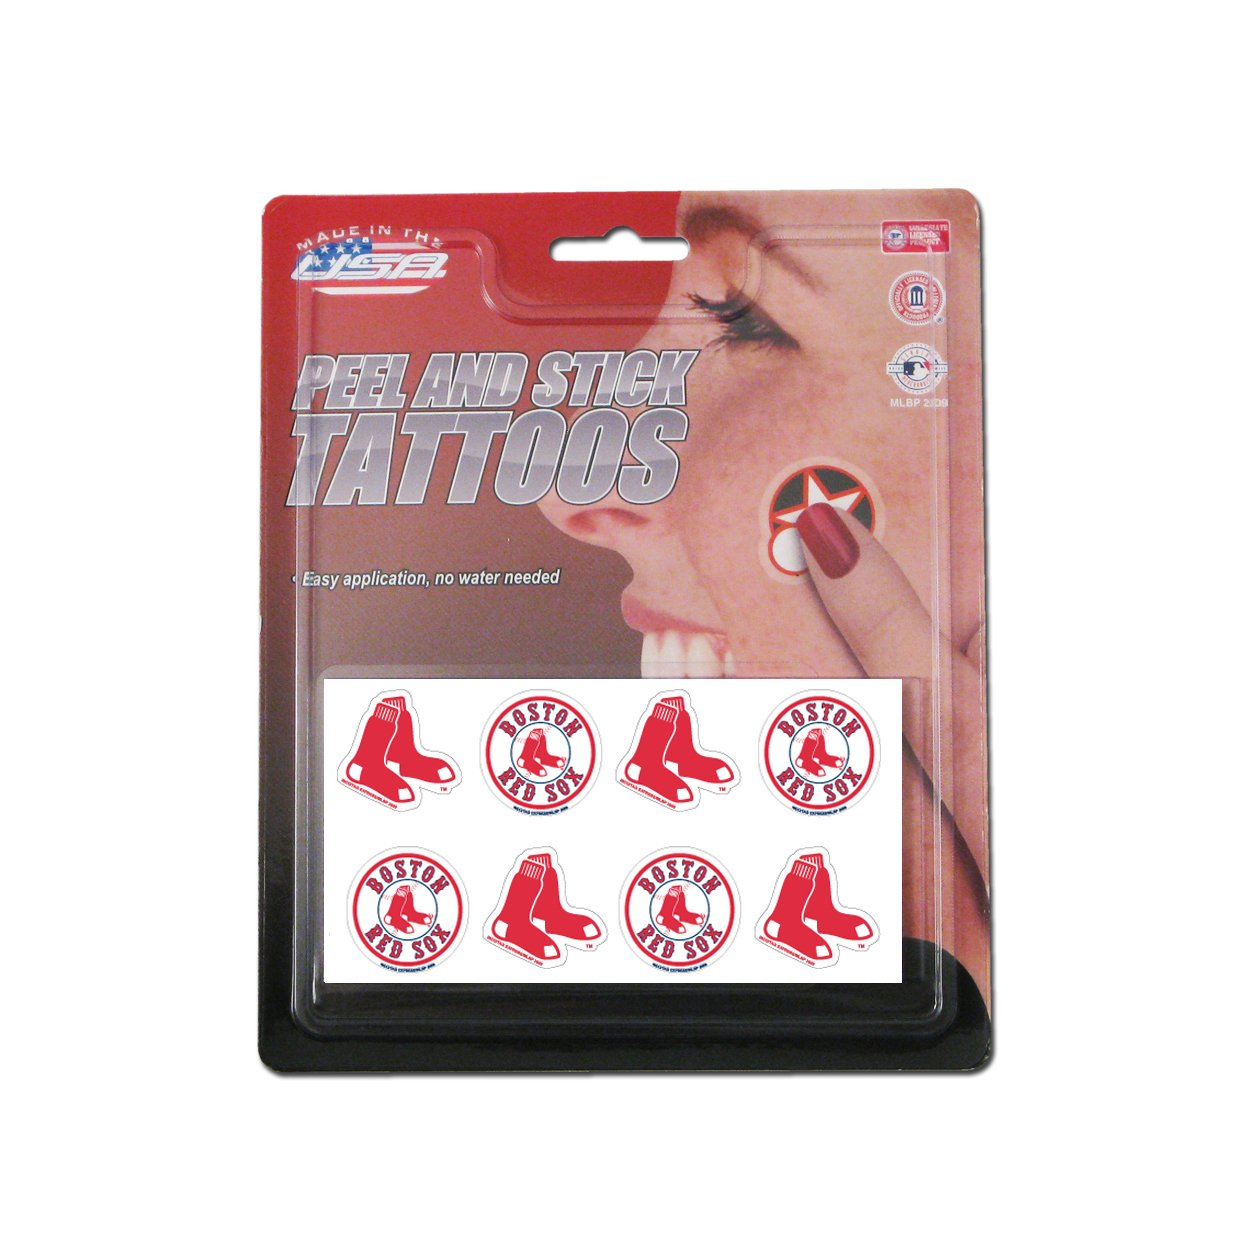 Rico MLB Boston Red Sox Products MLB Temporary Tattoos Boston Red Sox, Black, Small by Rico (Image #1)